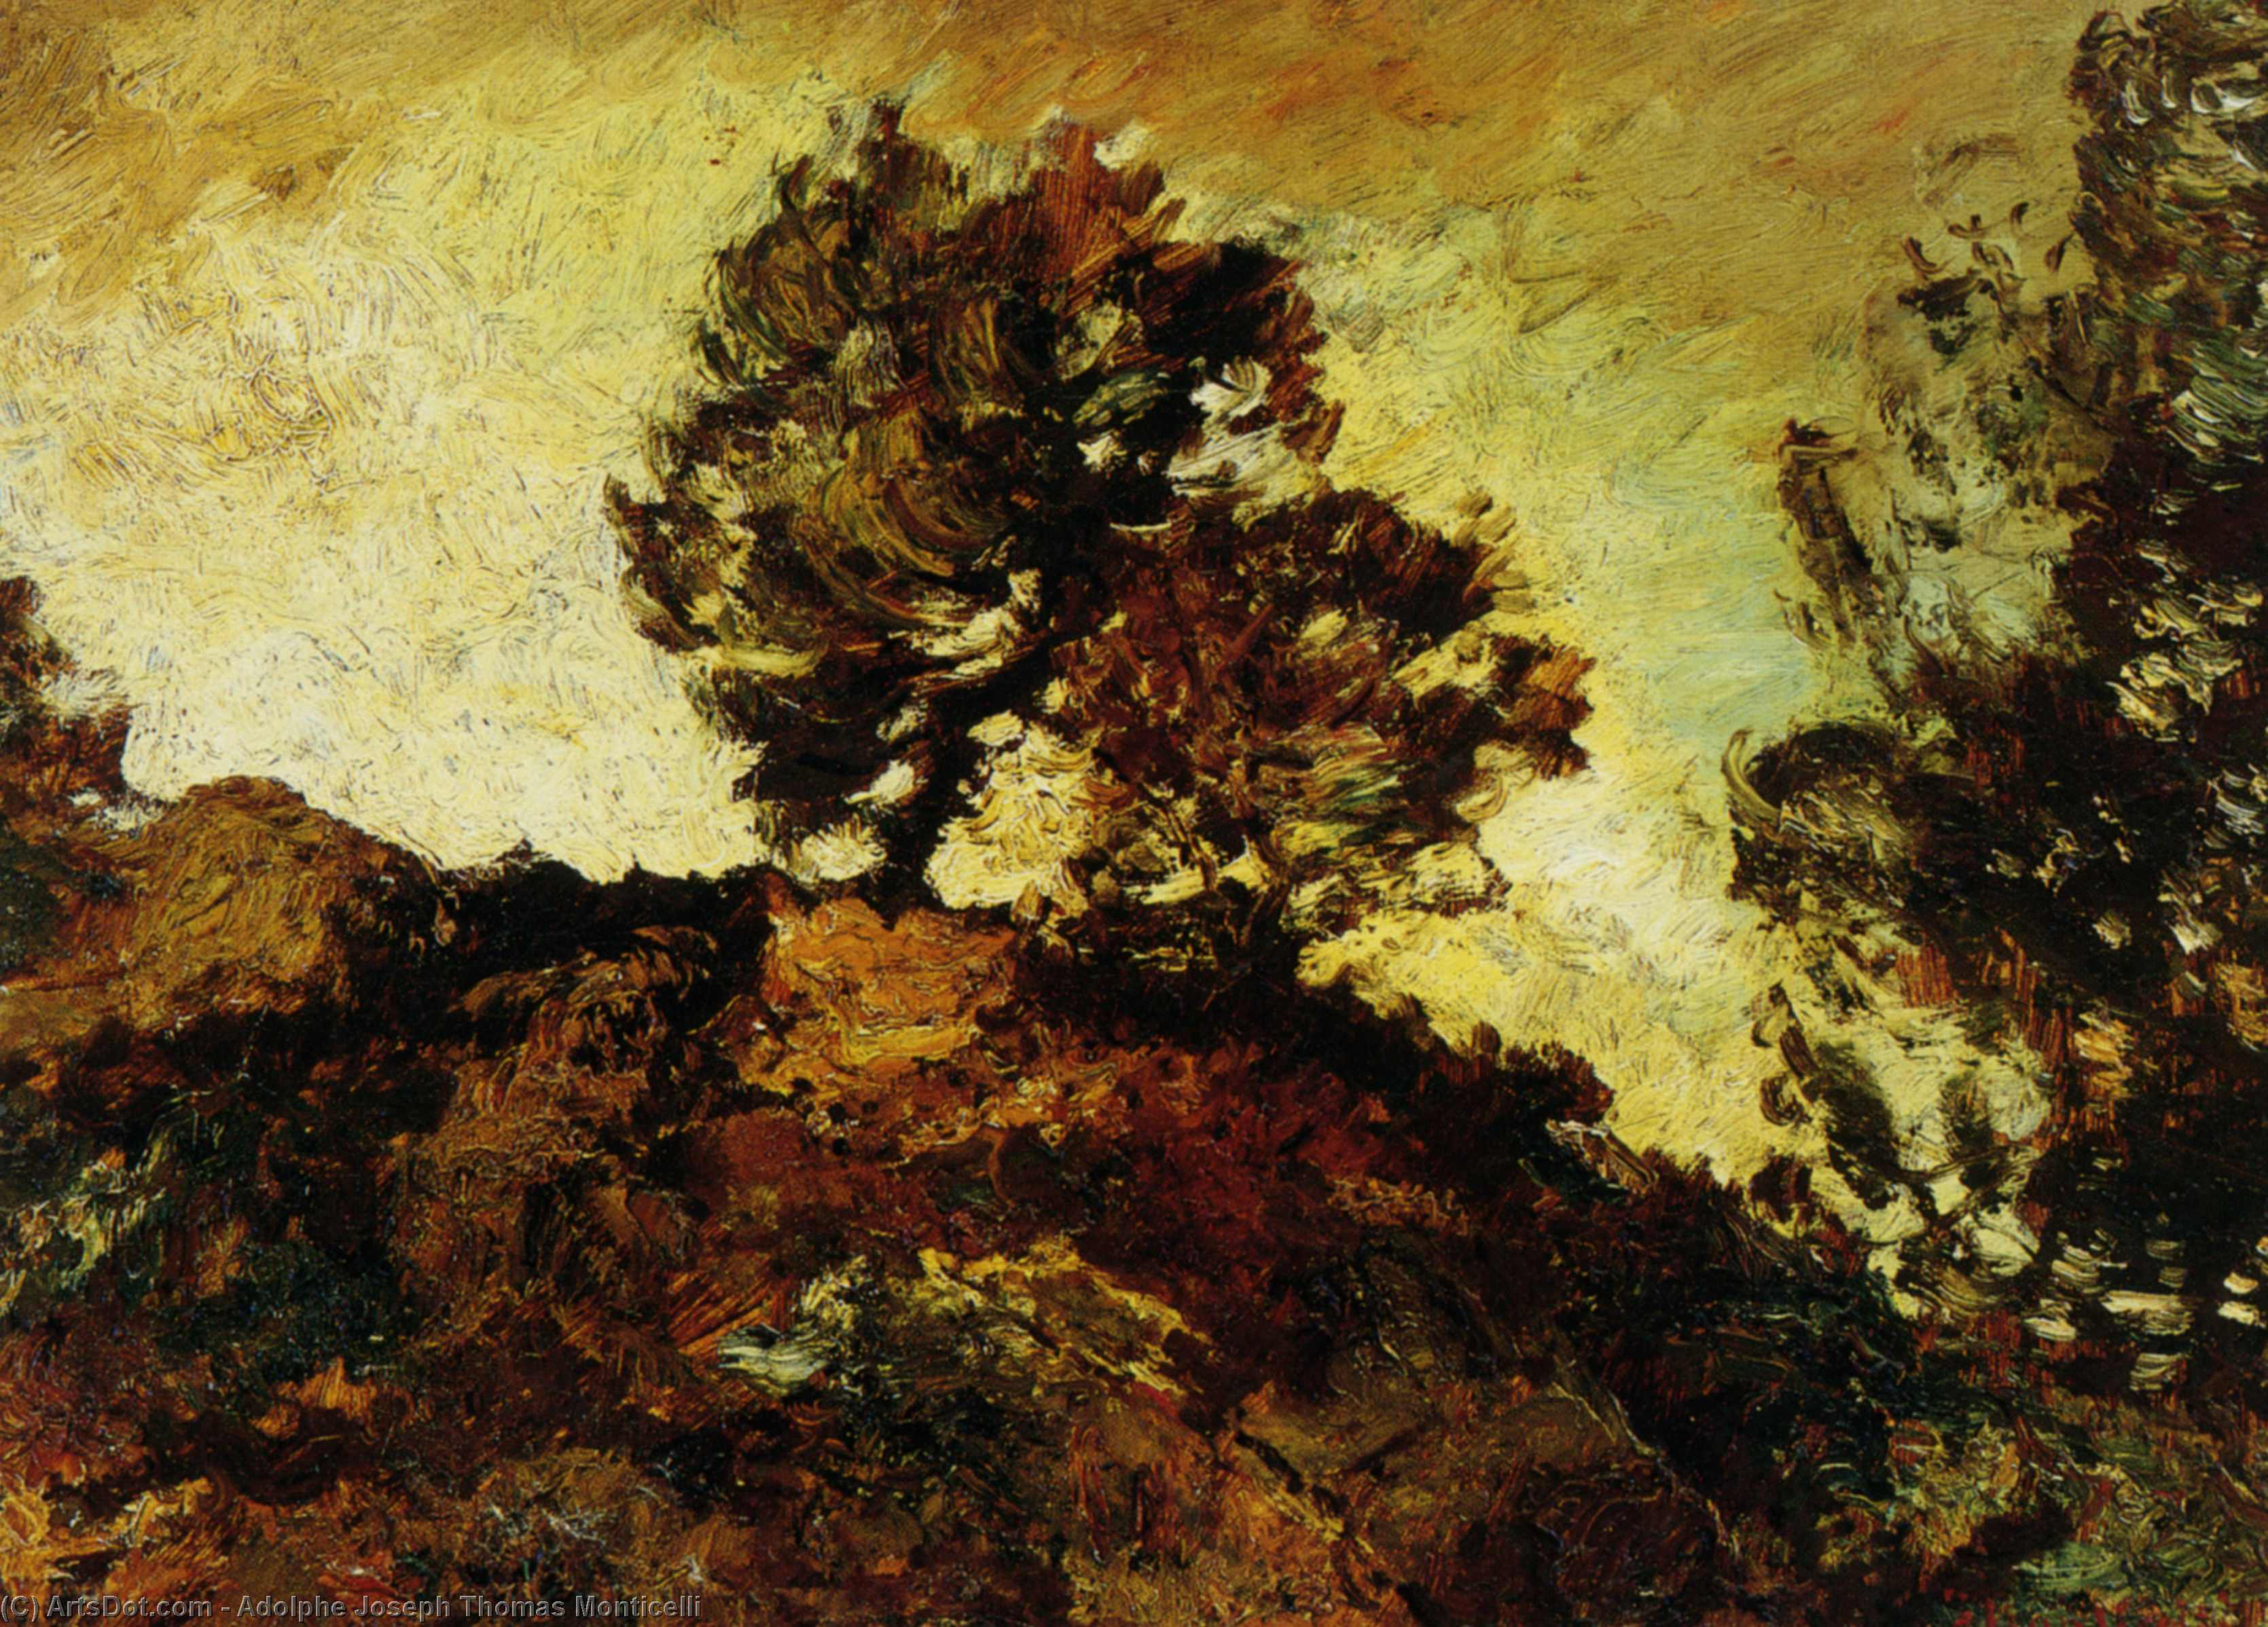 Wikioo.org - The Encyclopedia of Fine Arts - Painting, Artwork by Adolphe Joseph Thomas Monticelli - Rocky Landscape